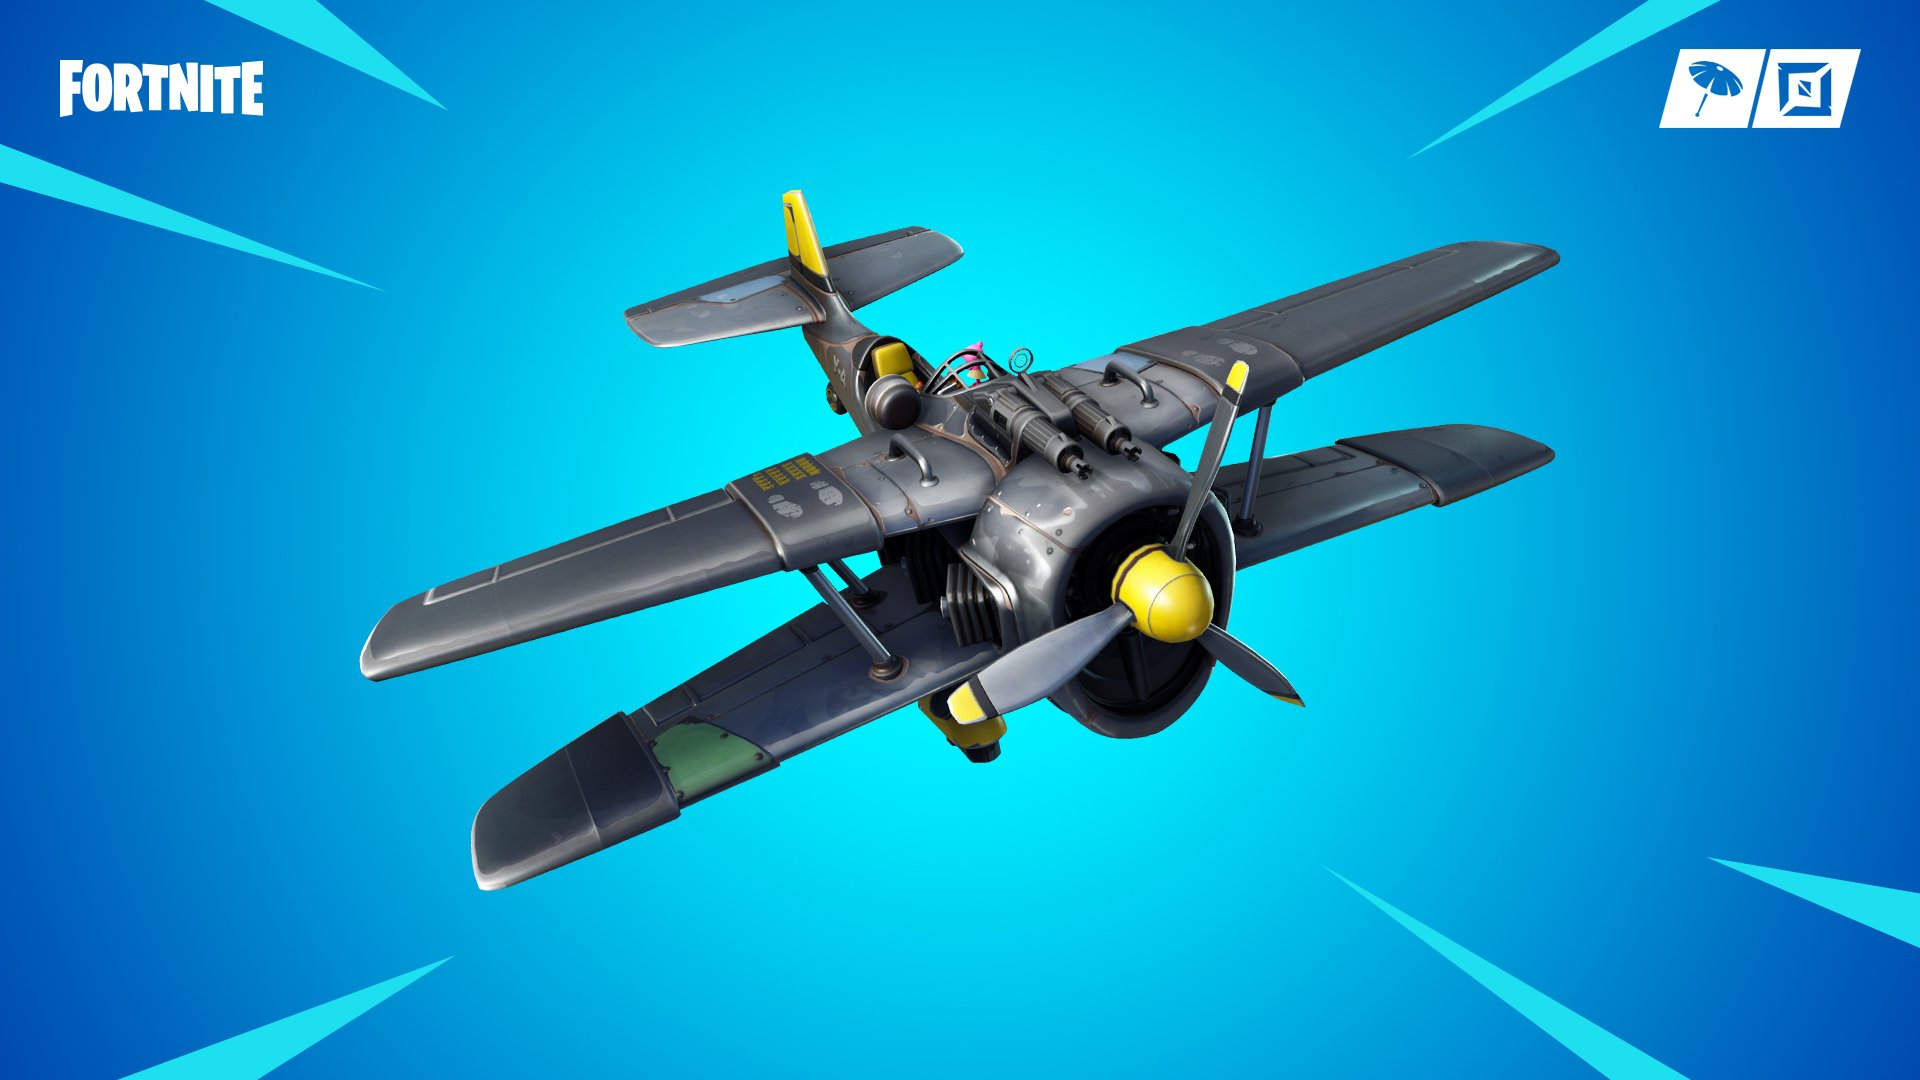 Fortnite Patch Notes Season 7 7.0